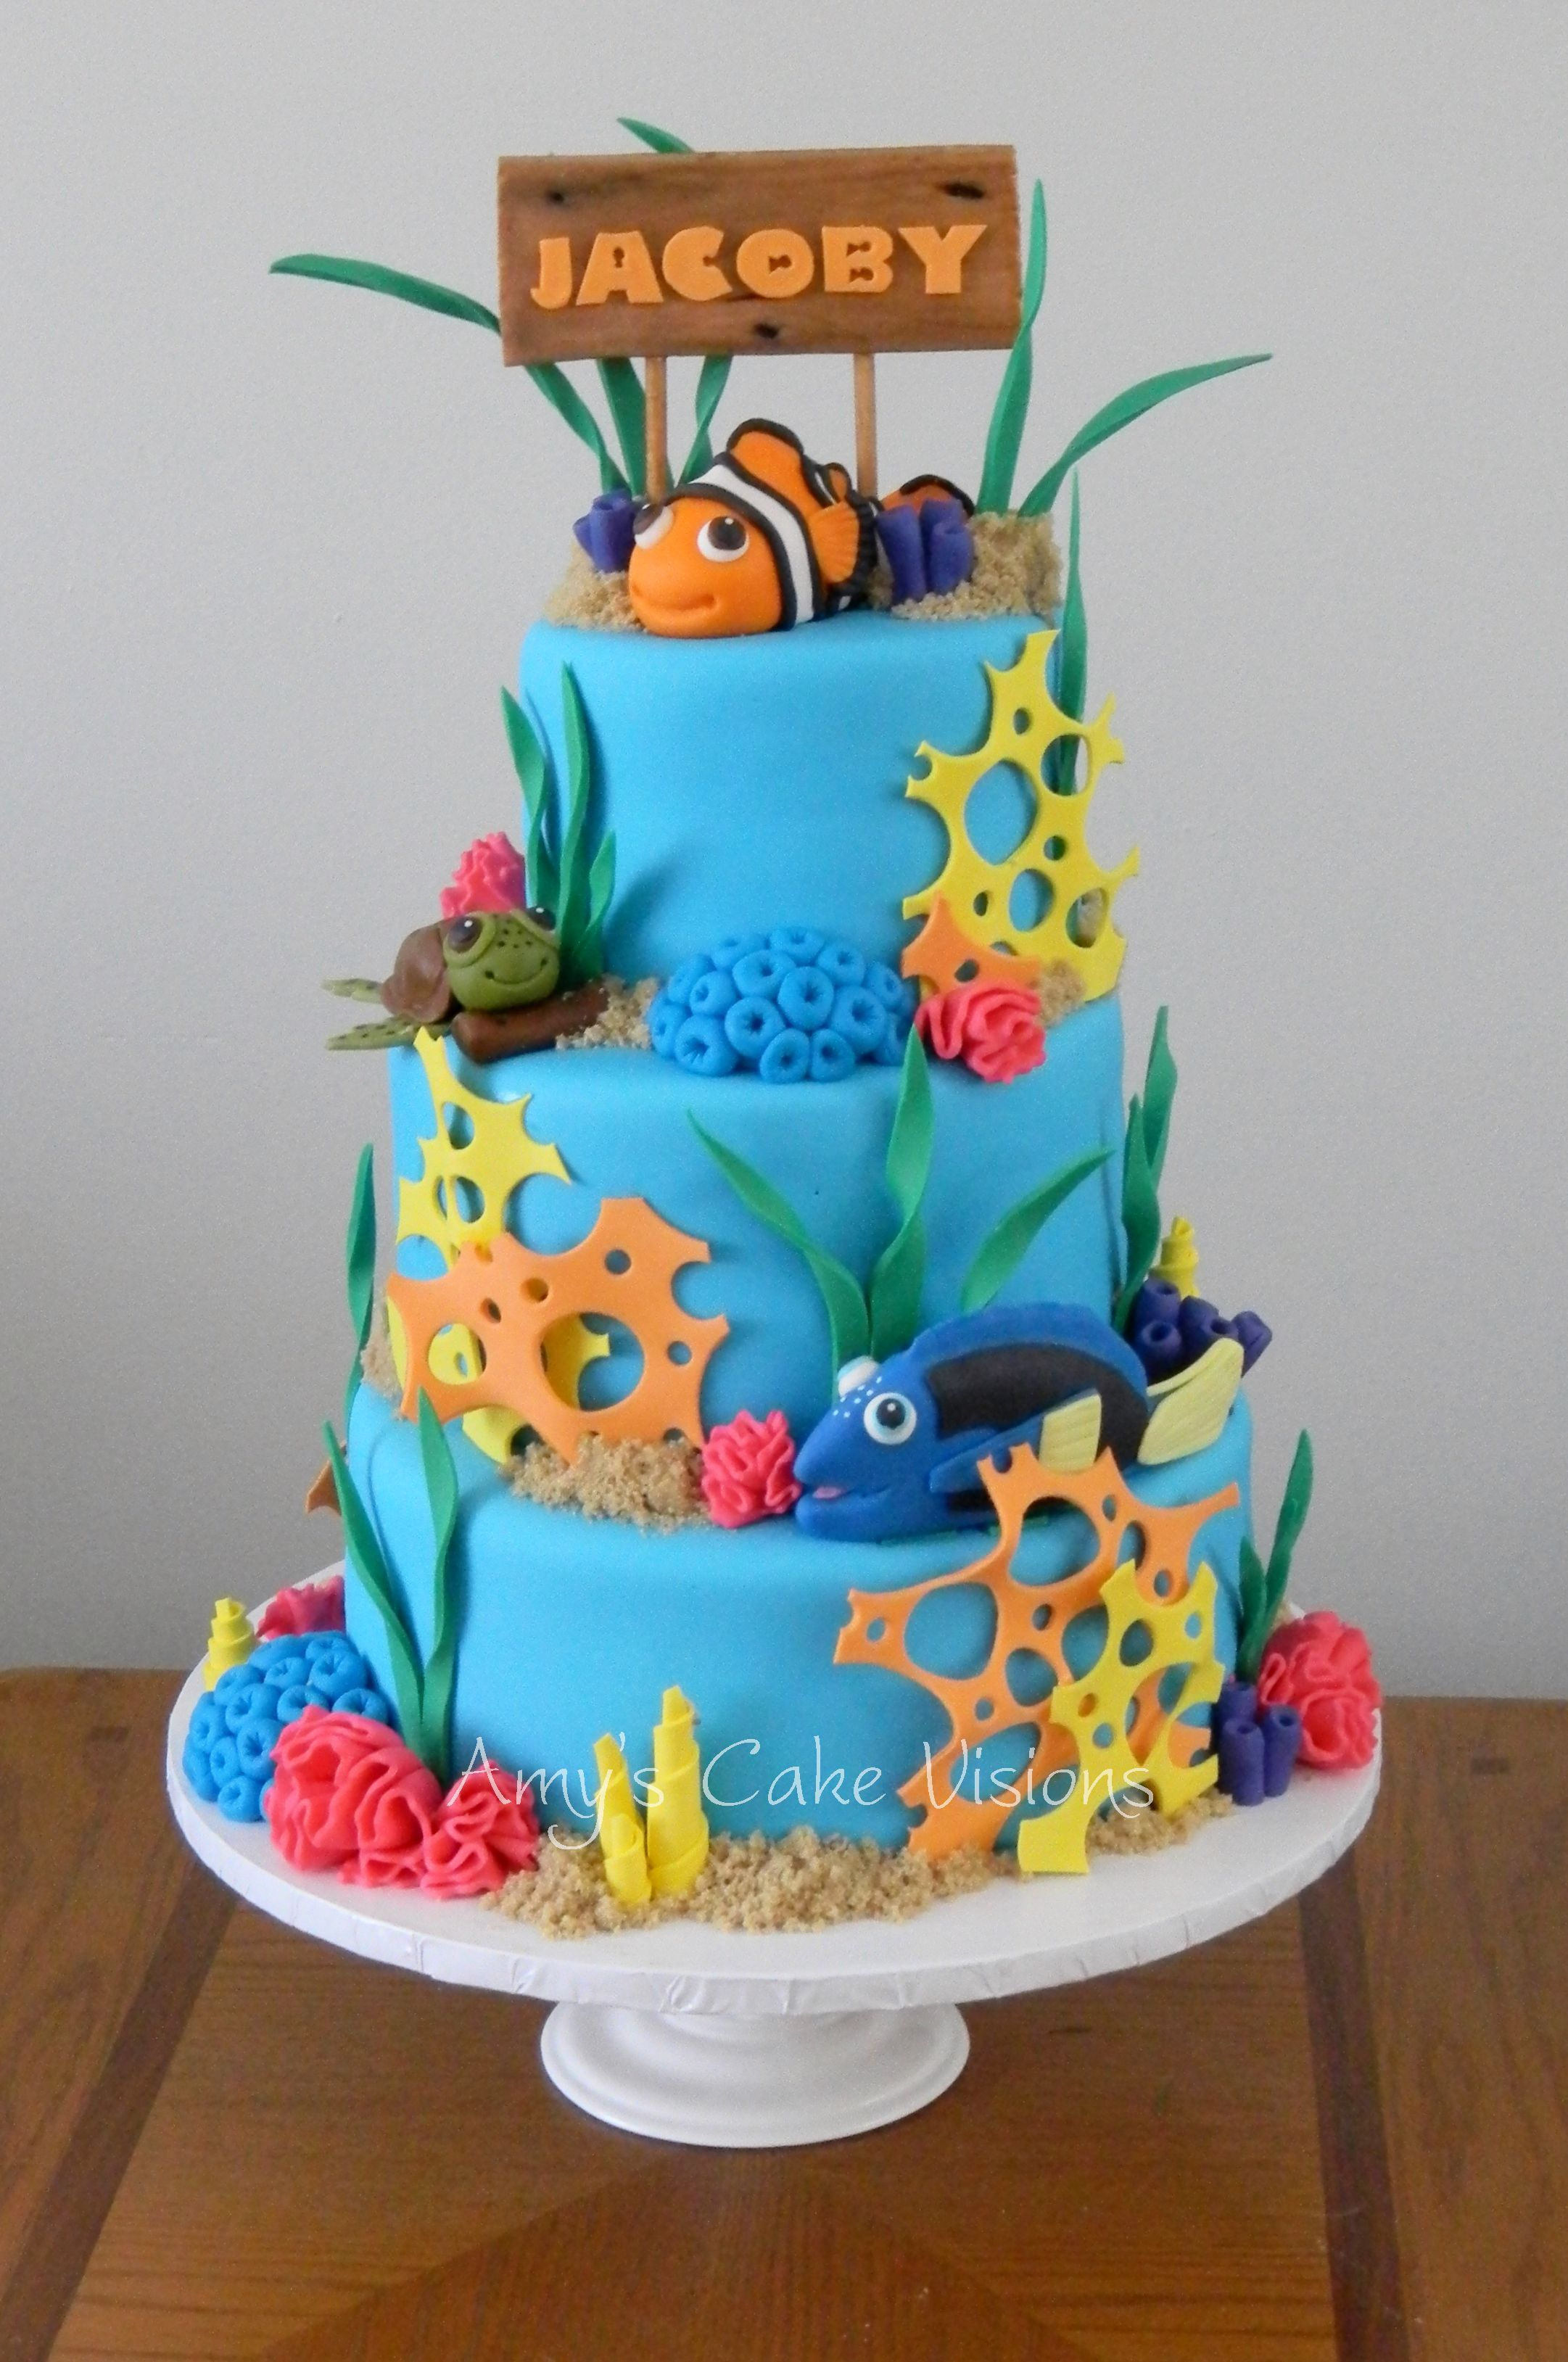 Jacoby S Under The Sea Cake